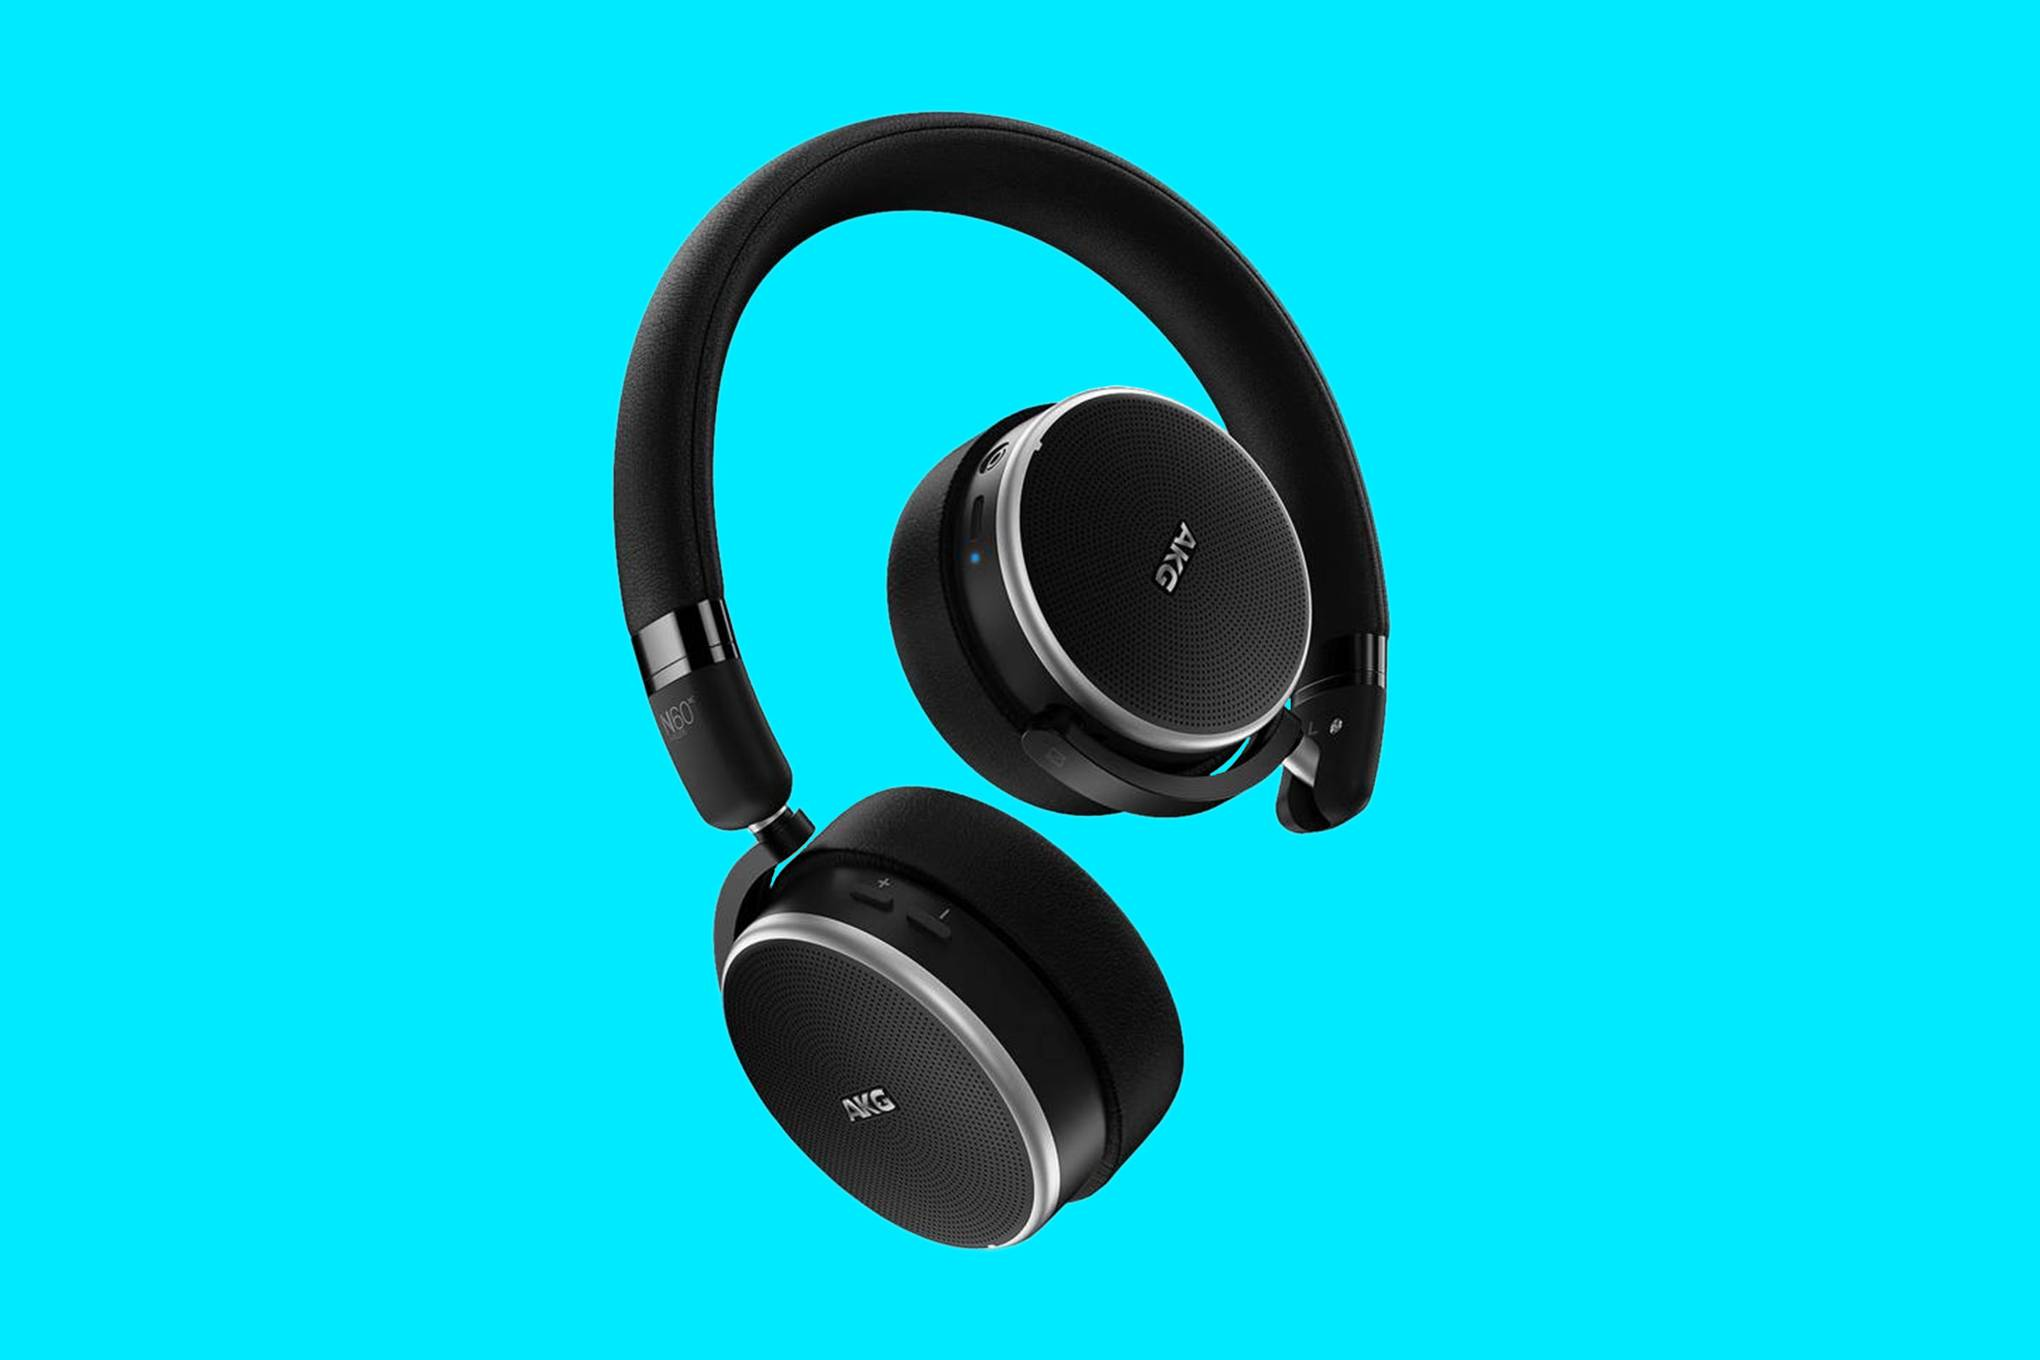 f6884970852 These are the best noise-cancelling headphones in 2019 | WIRED UK